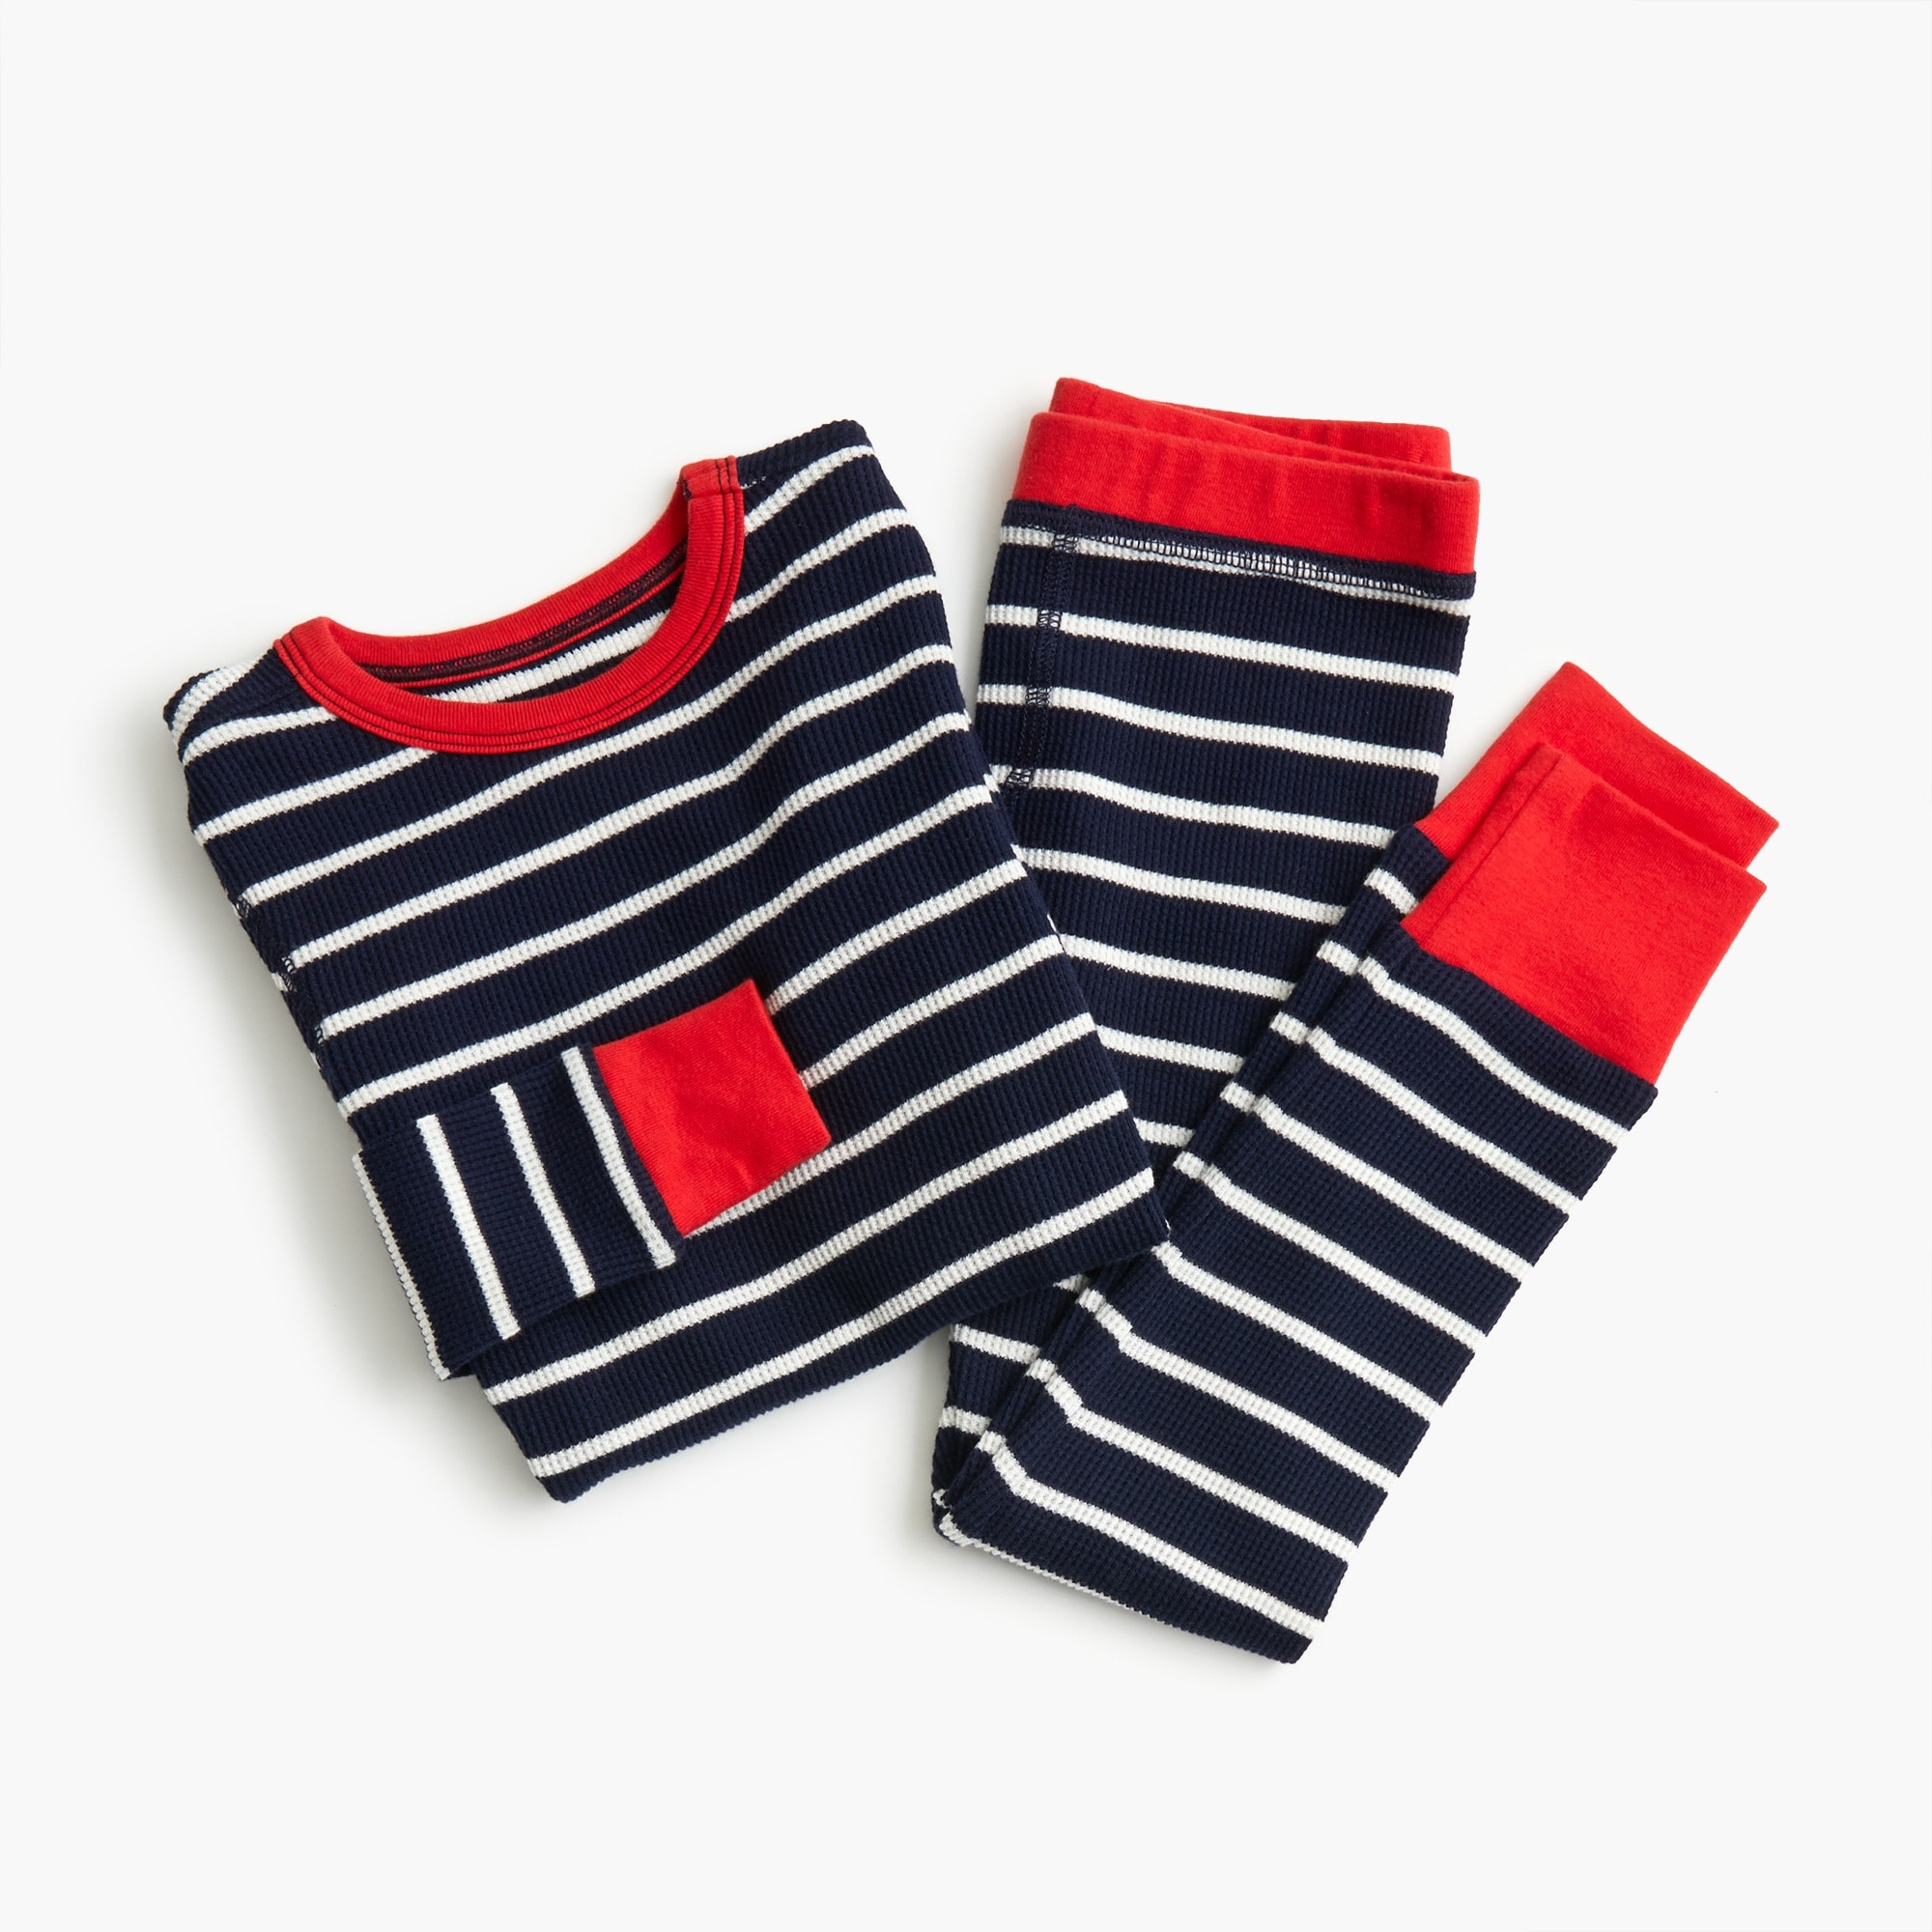 Image 3 for Kids' waffle-knit pajama set in stripes